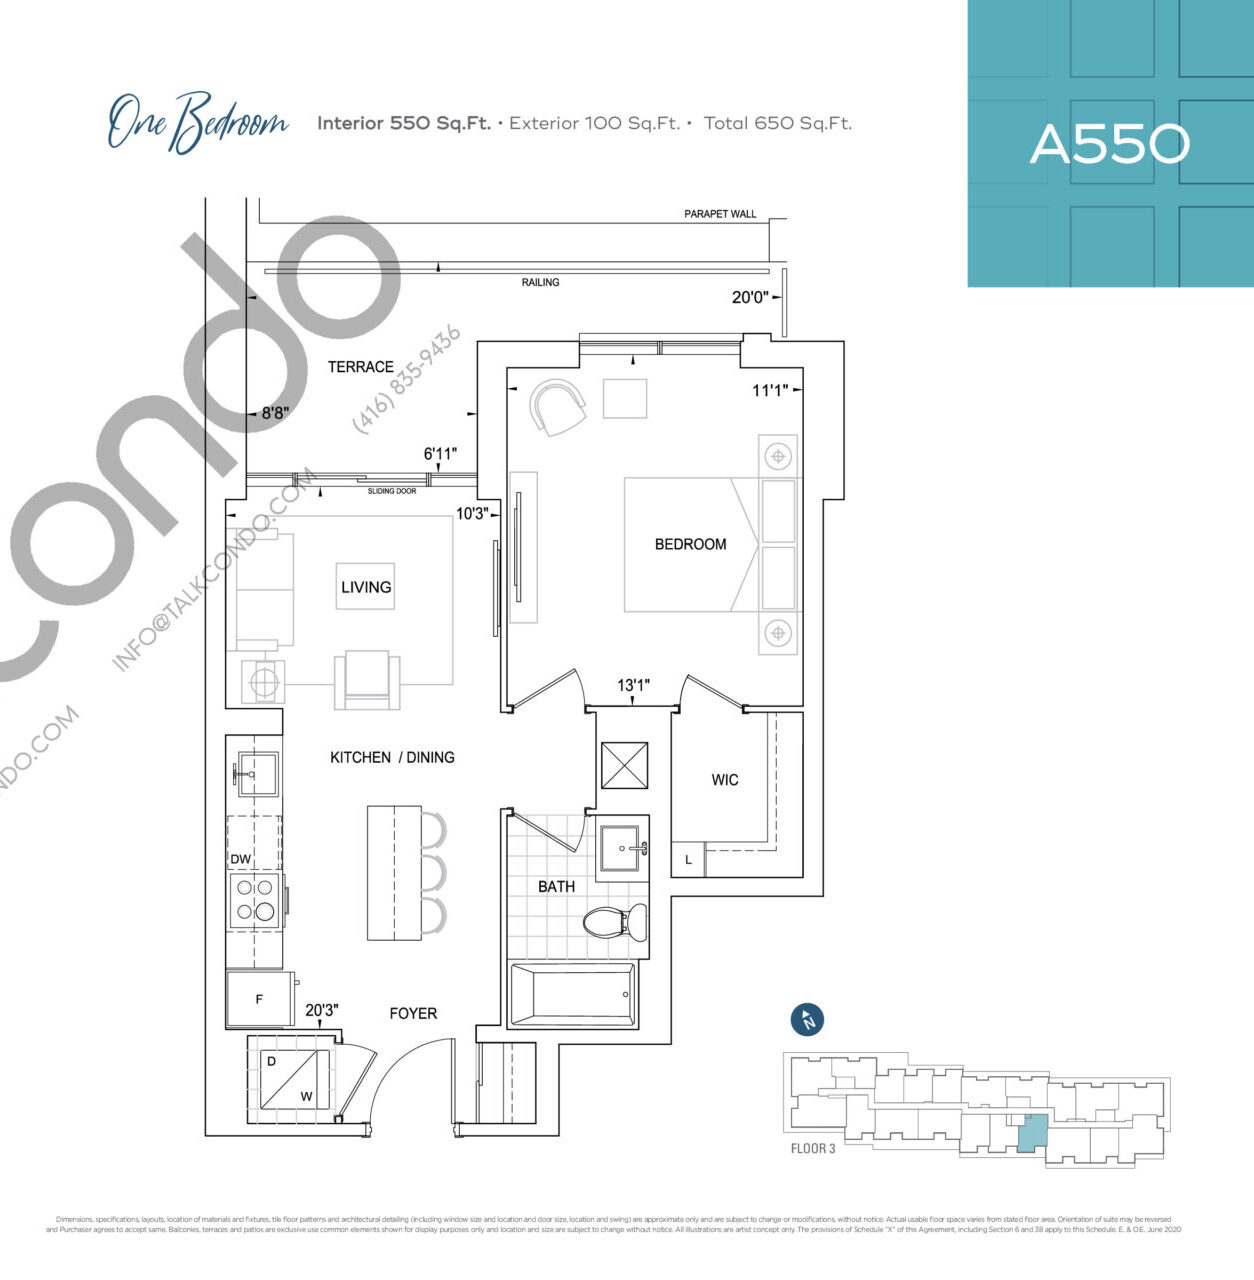 A550 Floor Plan at Dunwest Condos - 550 sq.ft